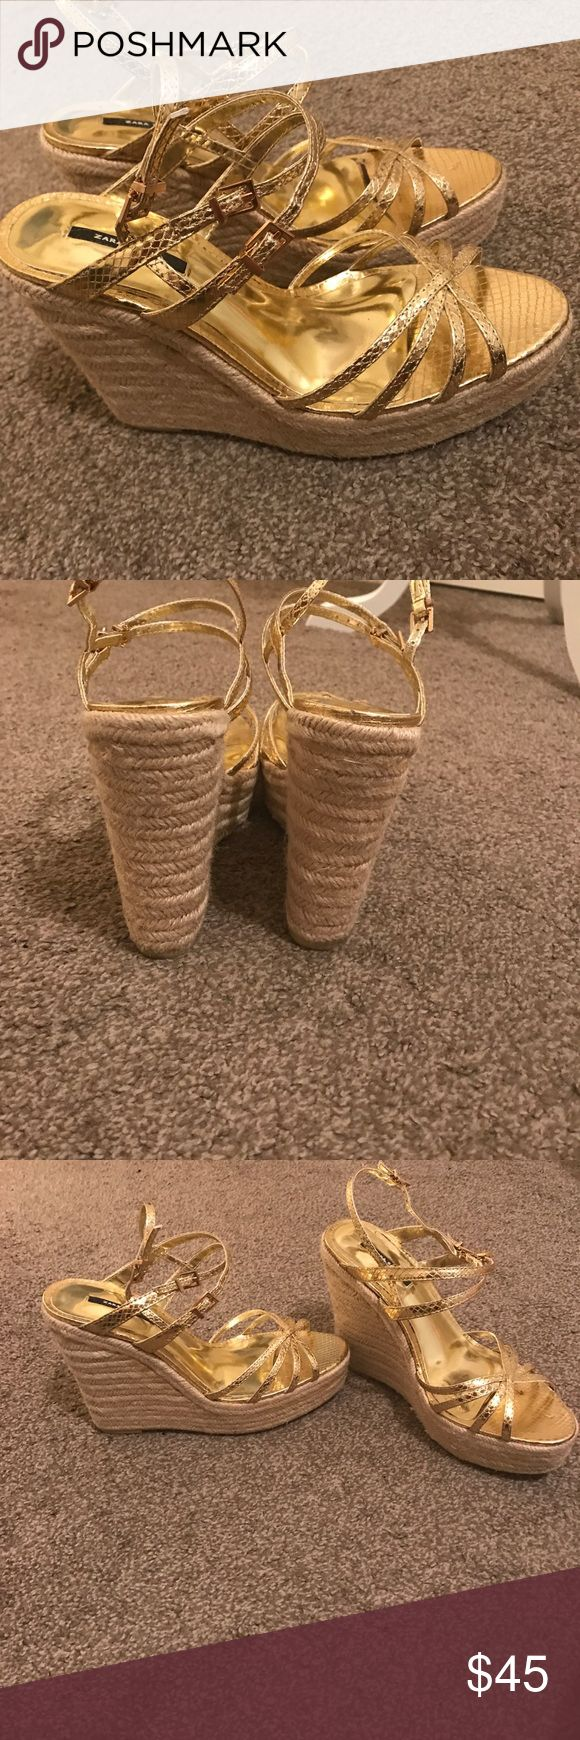 Zara Gold Espadrille Wedges Worn twice I def needed a 40. These are in amazing condition. If you ever wanted gold wedges espadrilles these are your shoe! From the Zara Basic Collection Zara Shoes Espadrilles